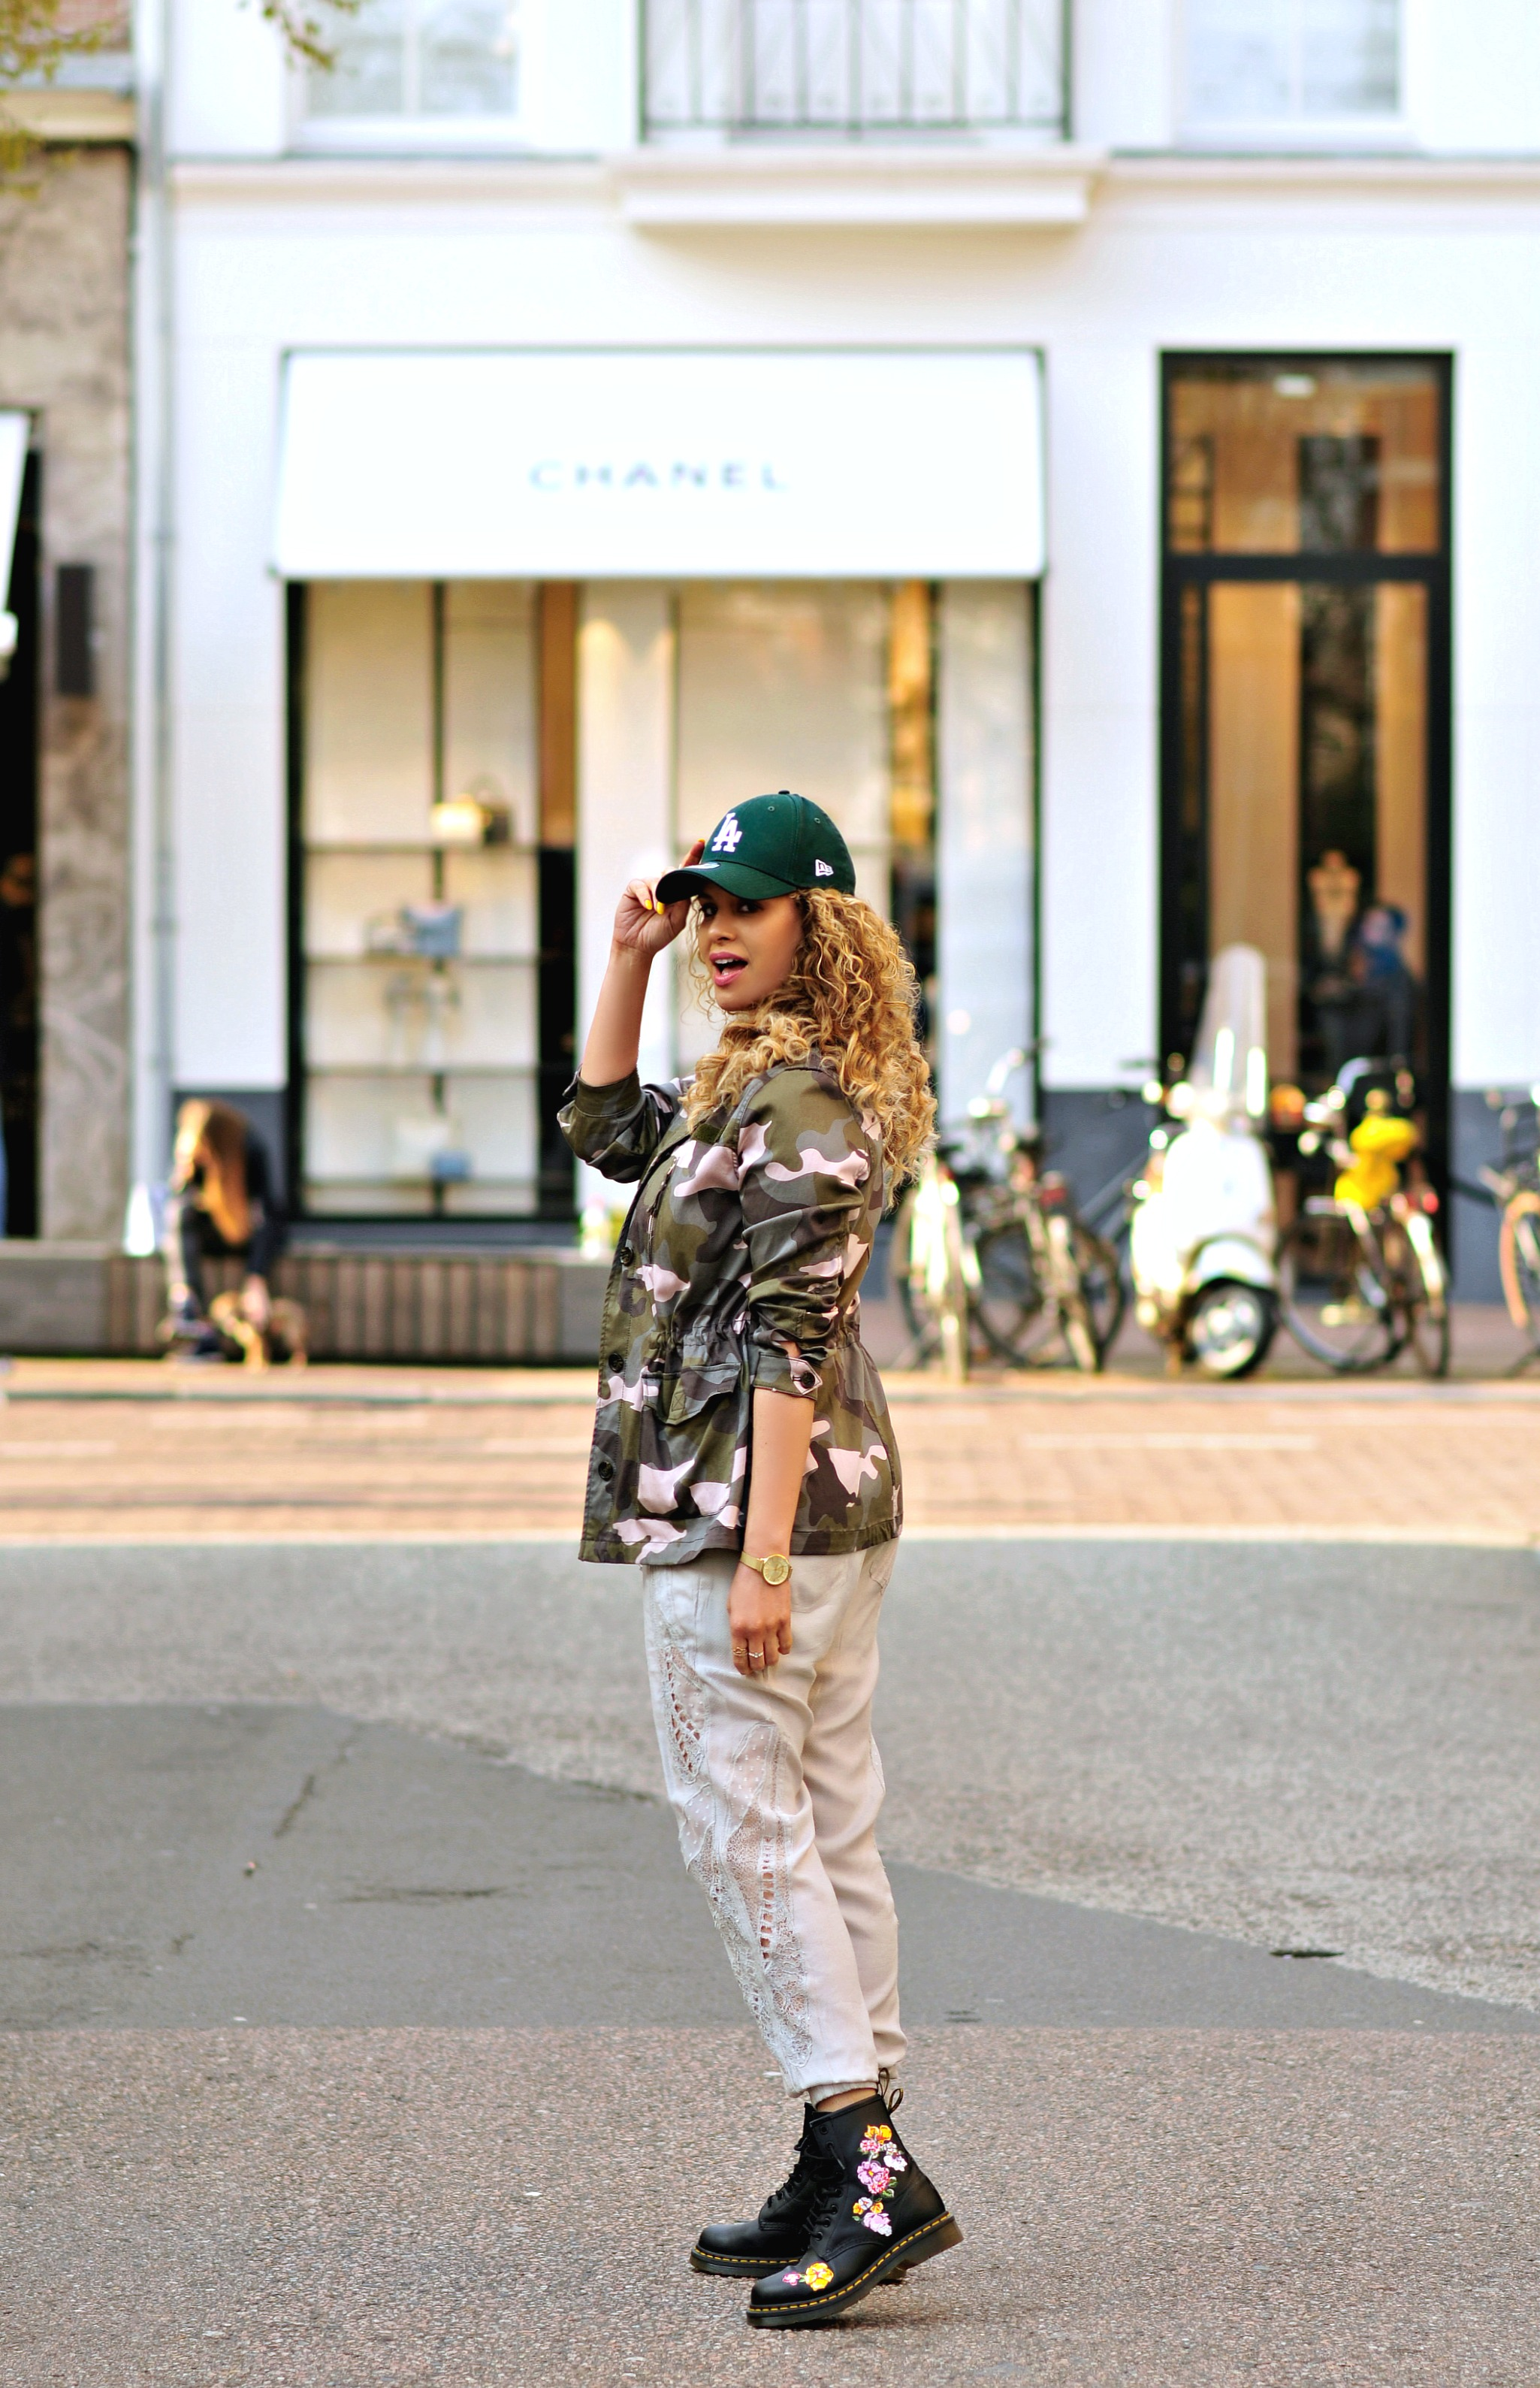 5 ways to be a tourist in your hometown, Tamara Chloé, Camouflage jacket, Floral Dr Martens, Amsterdam